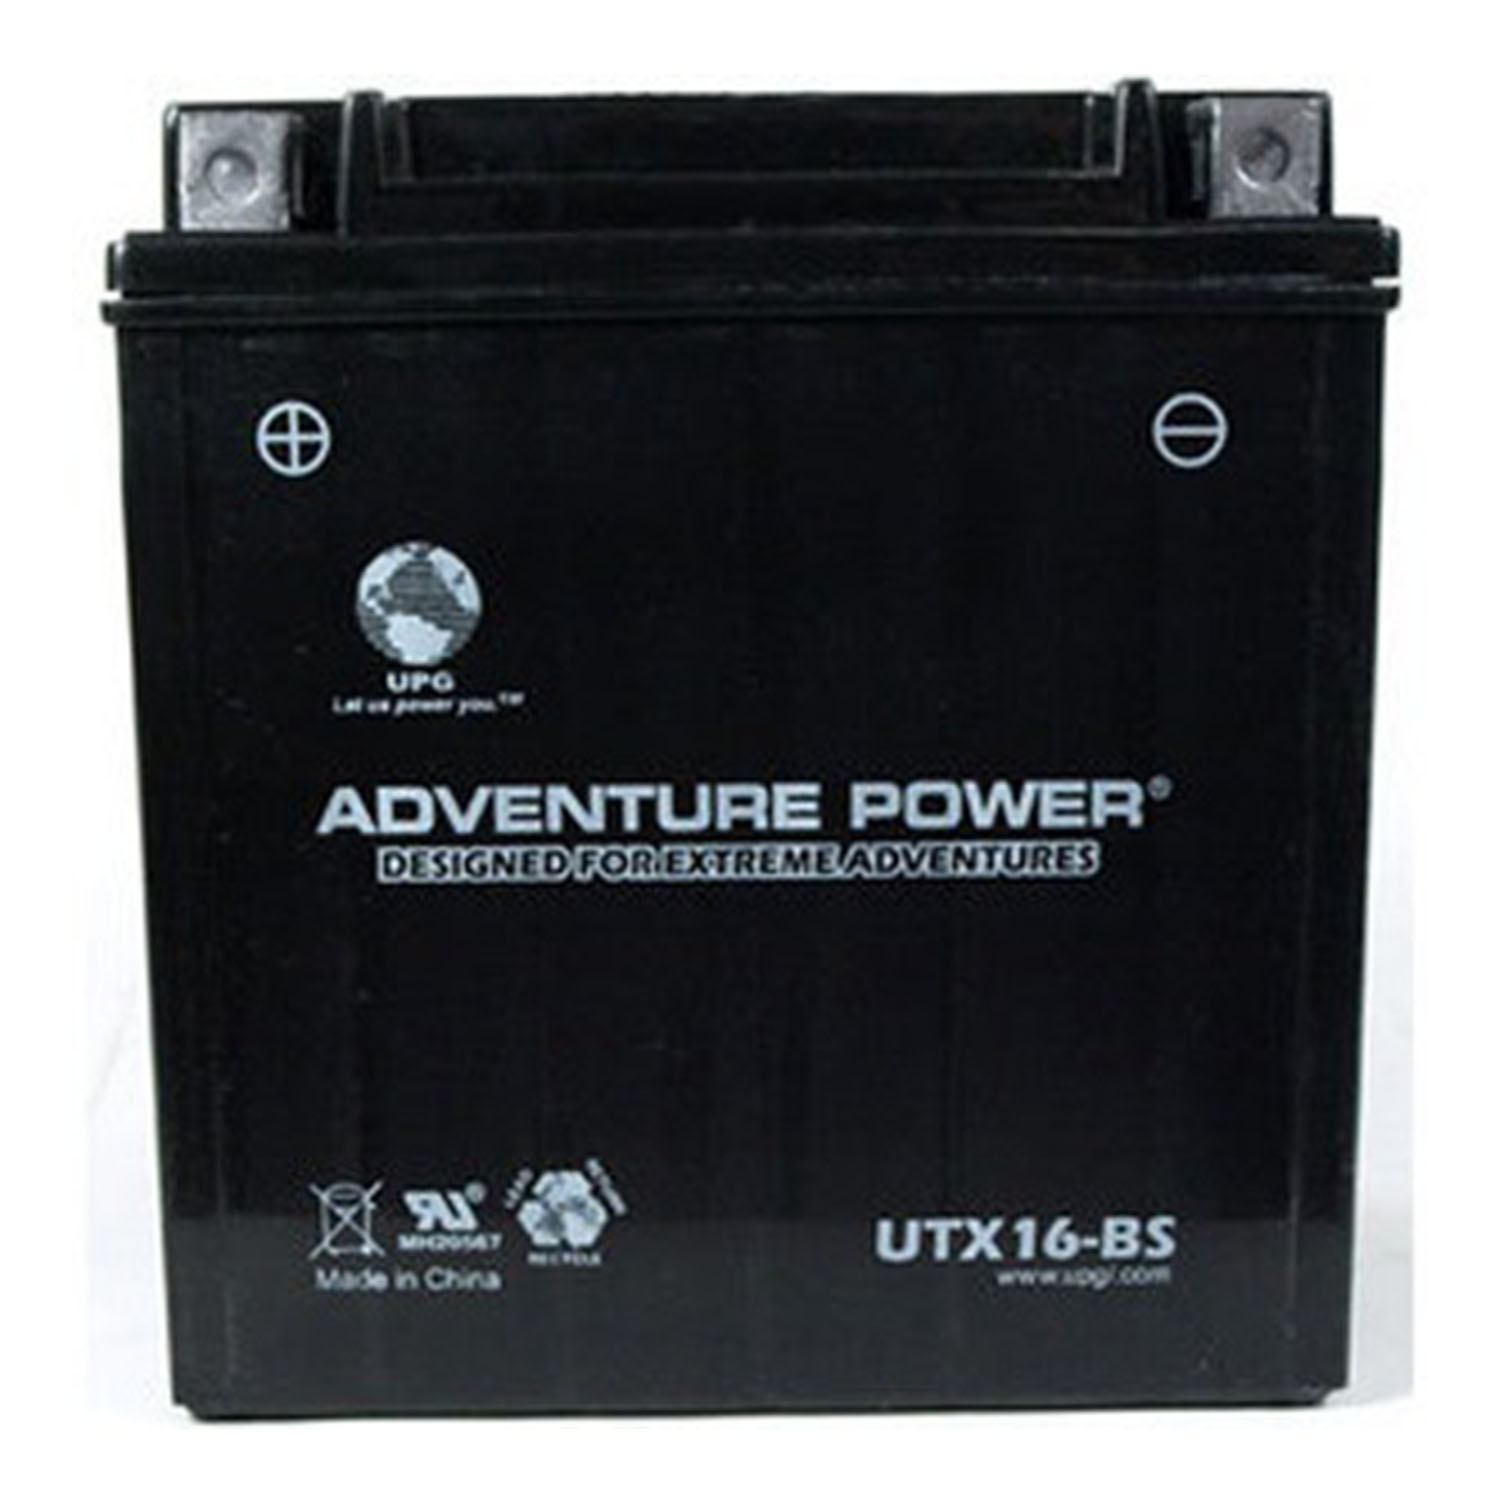 UTX16-BS 12V Battery for Kawasaki VN1500G, J, L, R Drifter '99-05